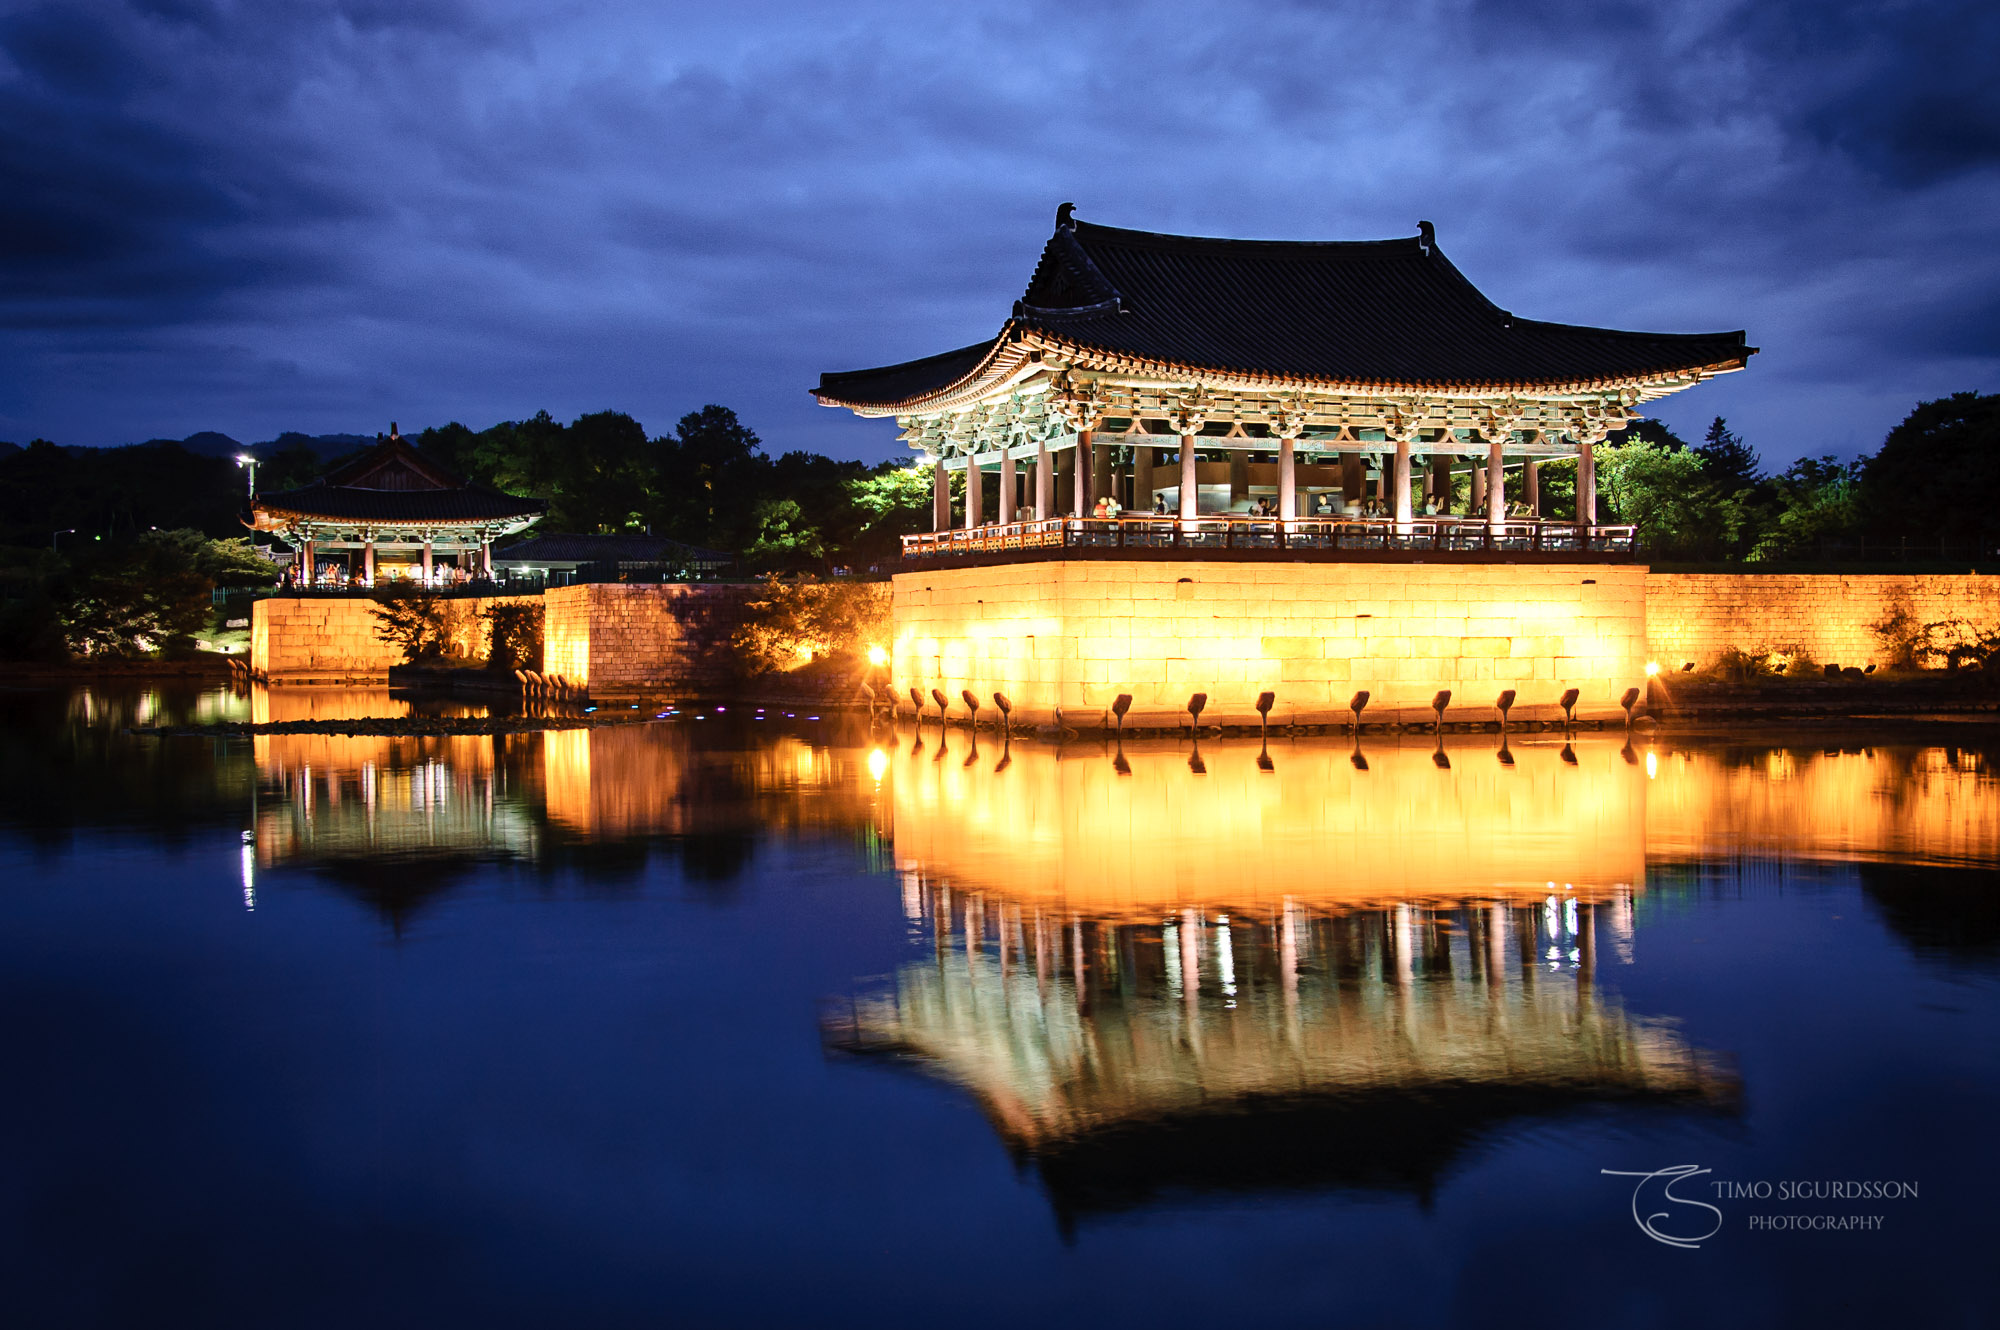 Anapji Pond, Gyeongju, South Korea. Palace reflection at night.